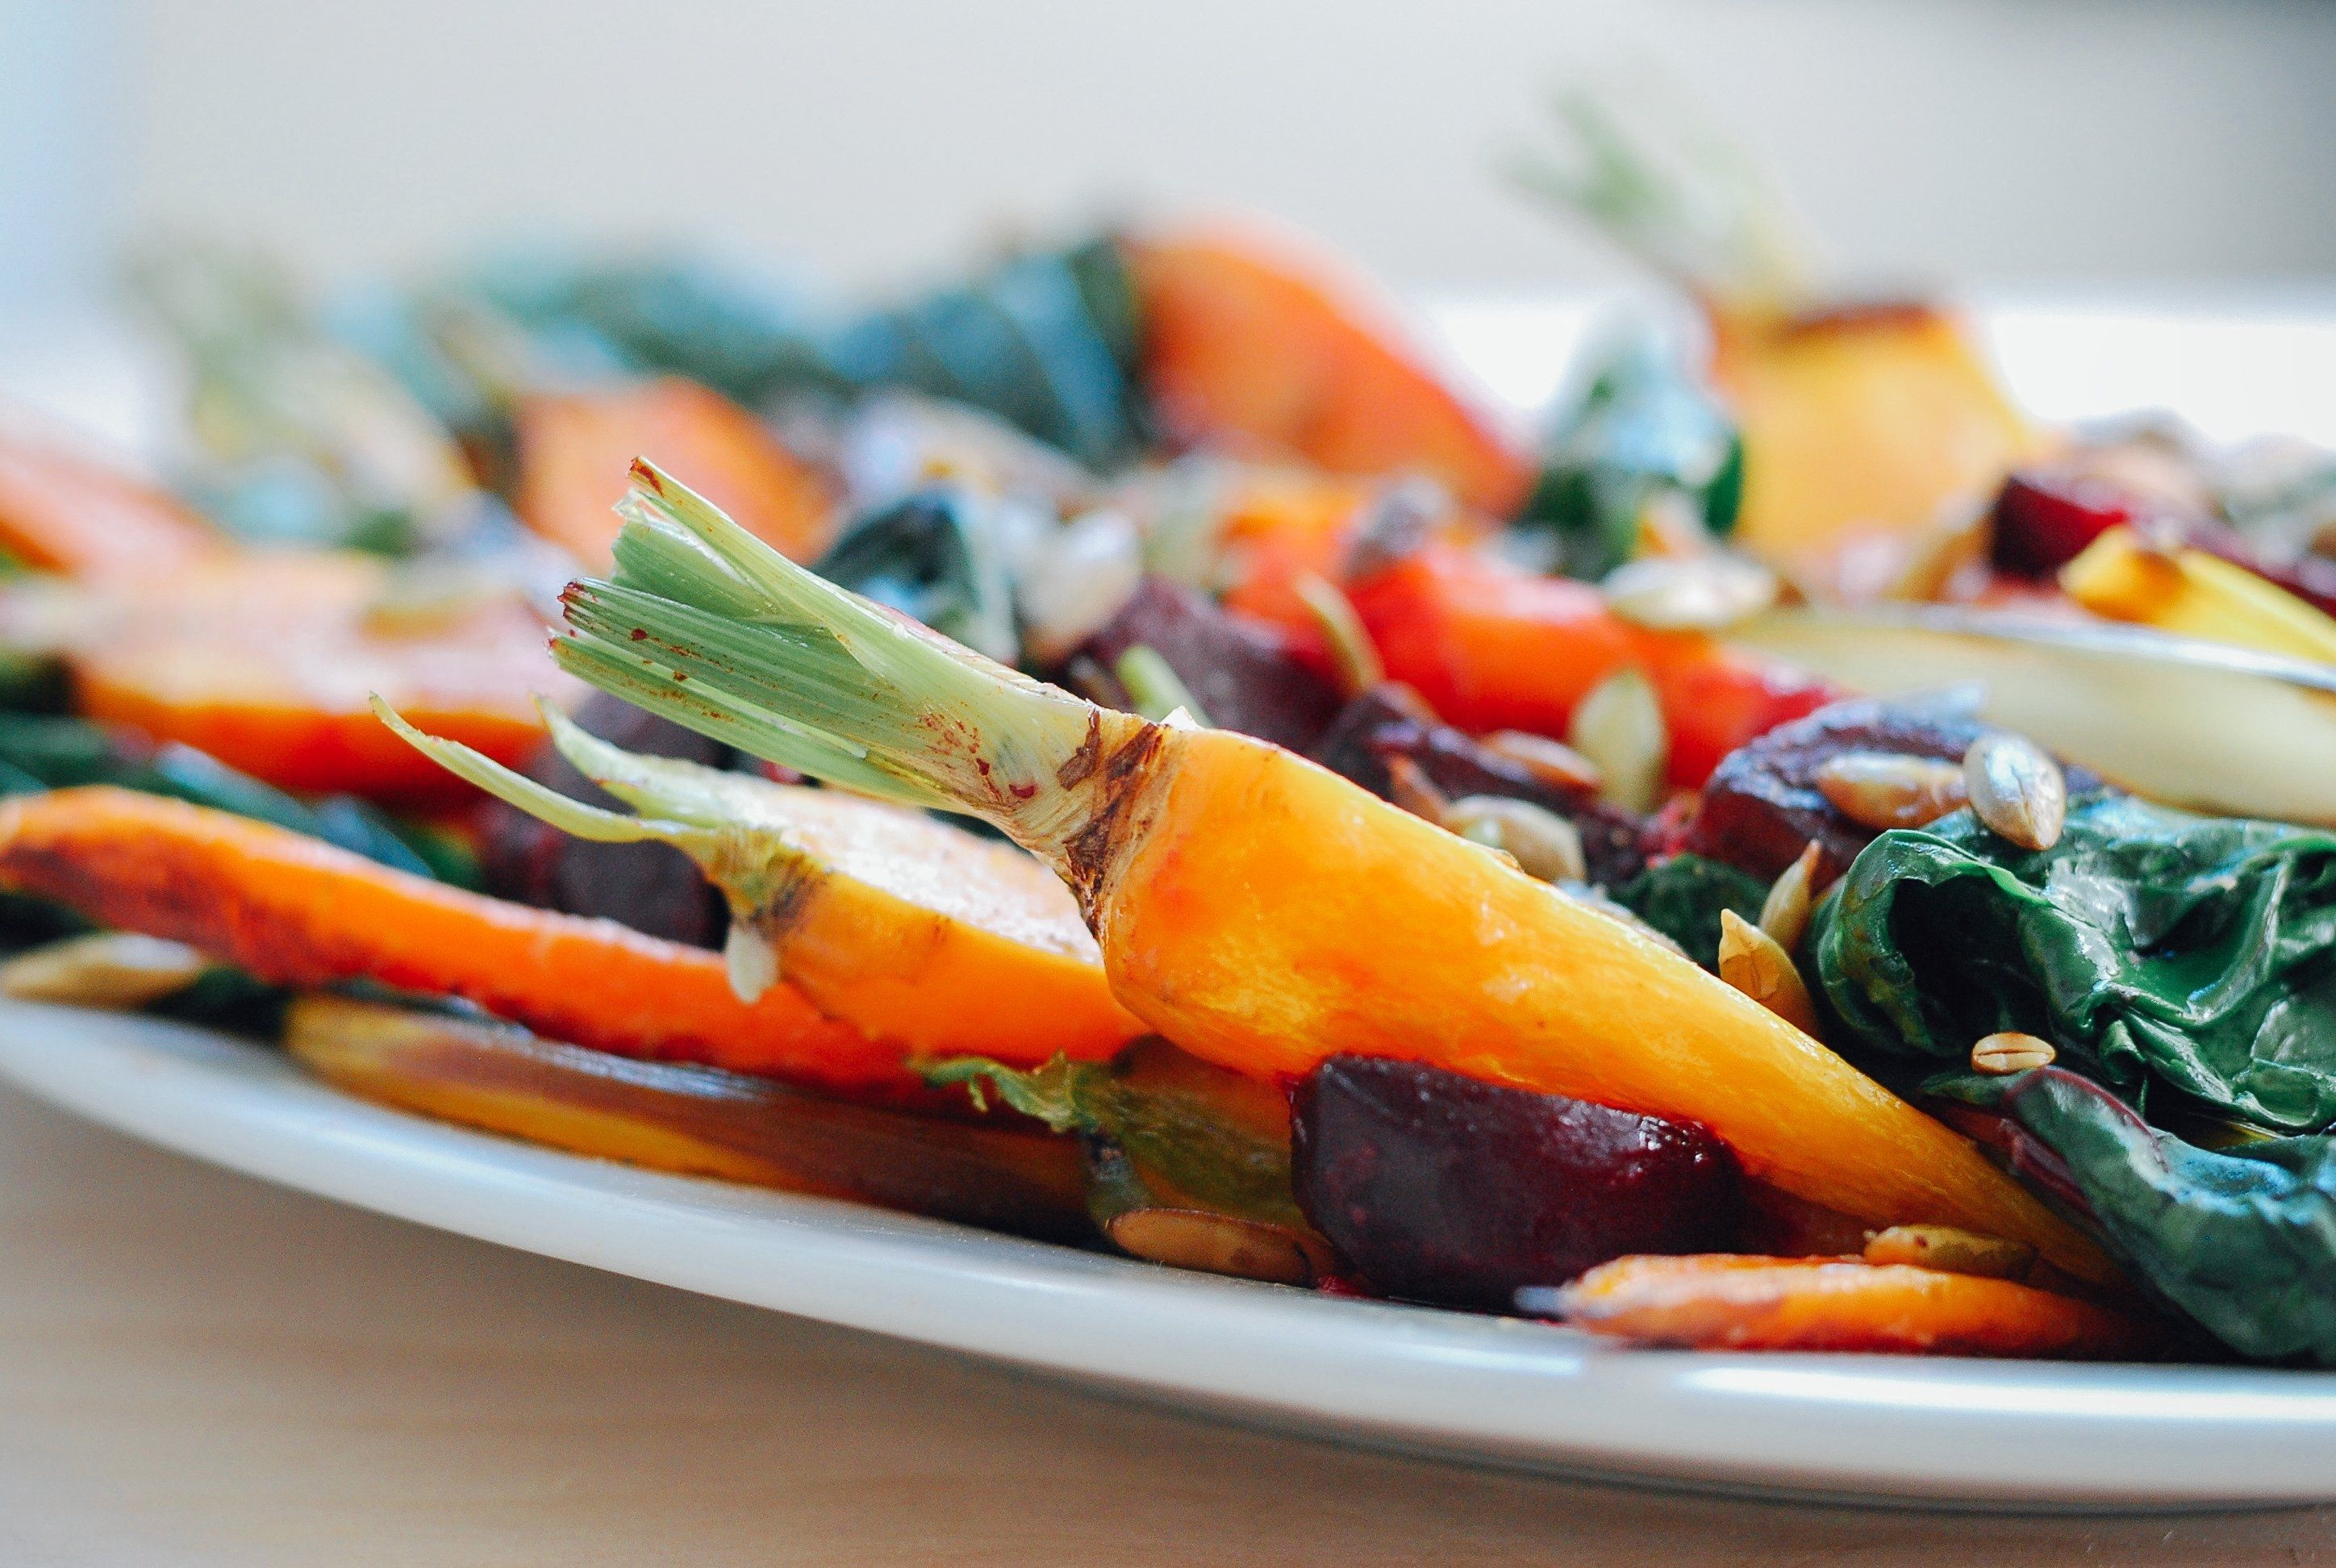 Roasted Vegetable Salad With Garlic Dressing Pictures, Photos, and ...